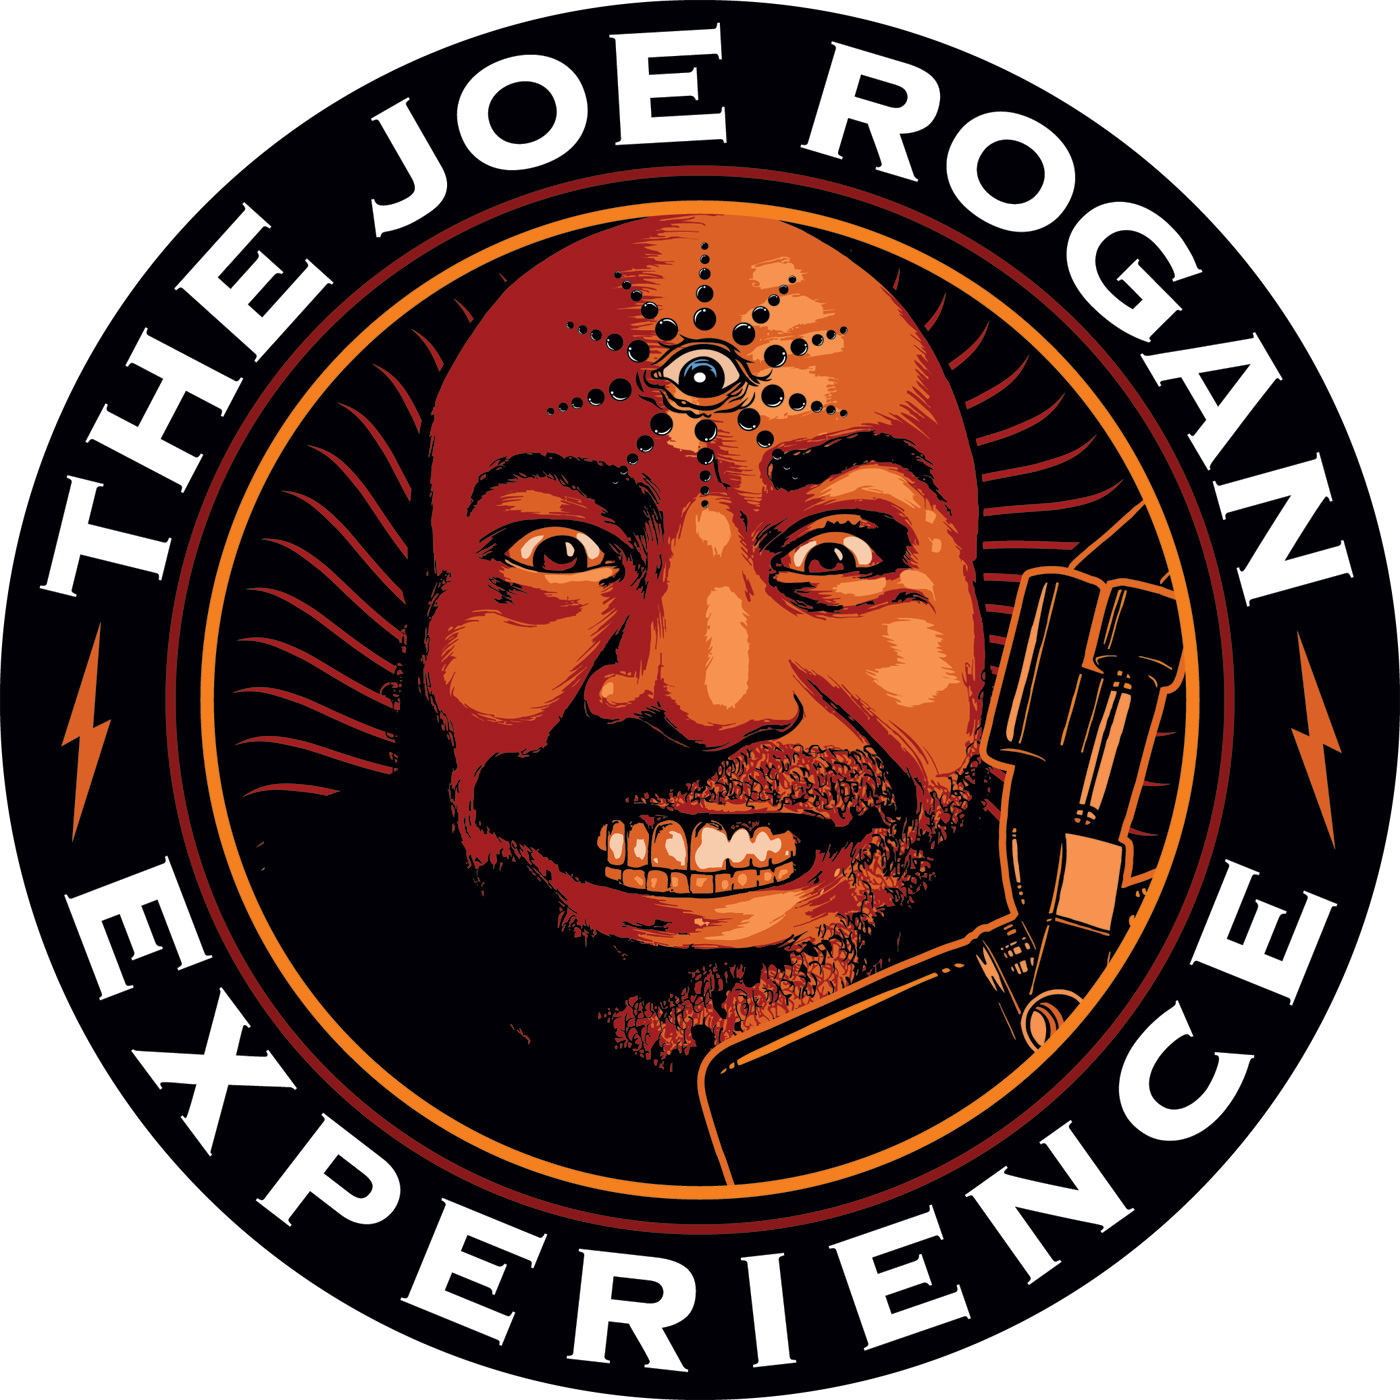 The Joe Rogan Experience PODCAST #127 - Aubrey Marcus, Brian Redban